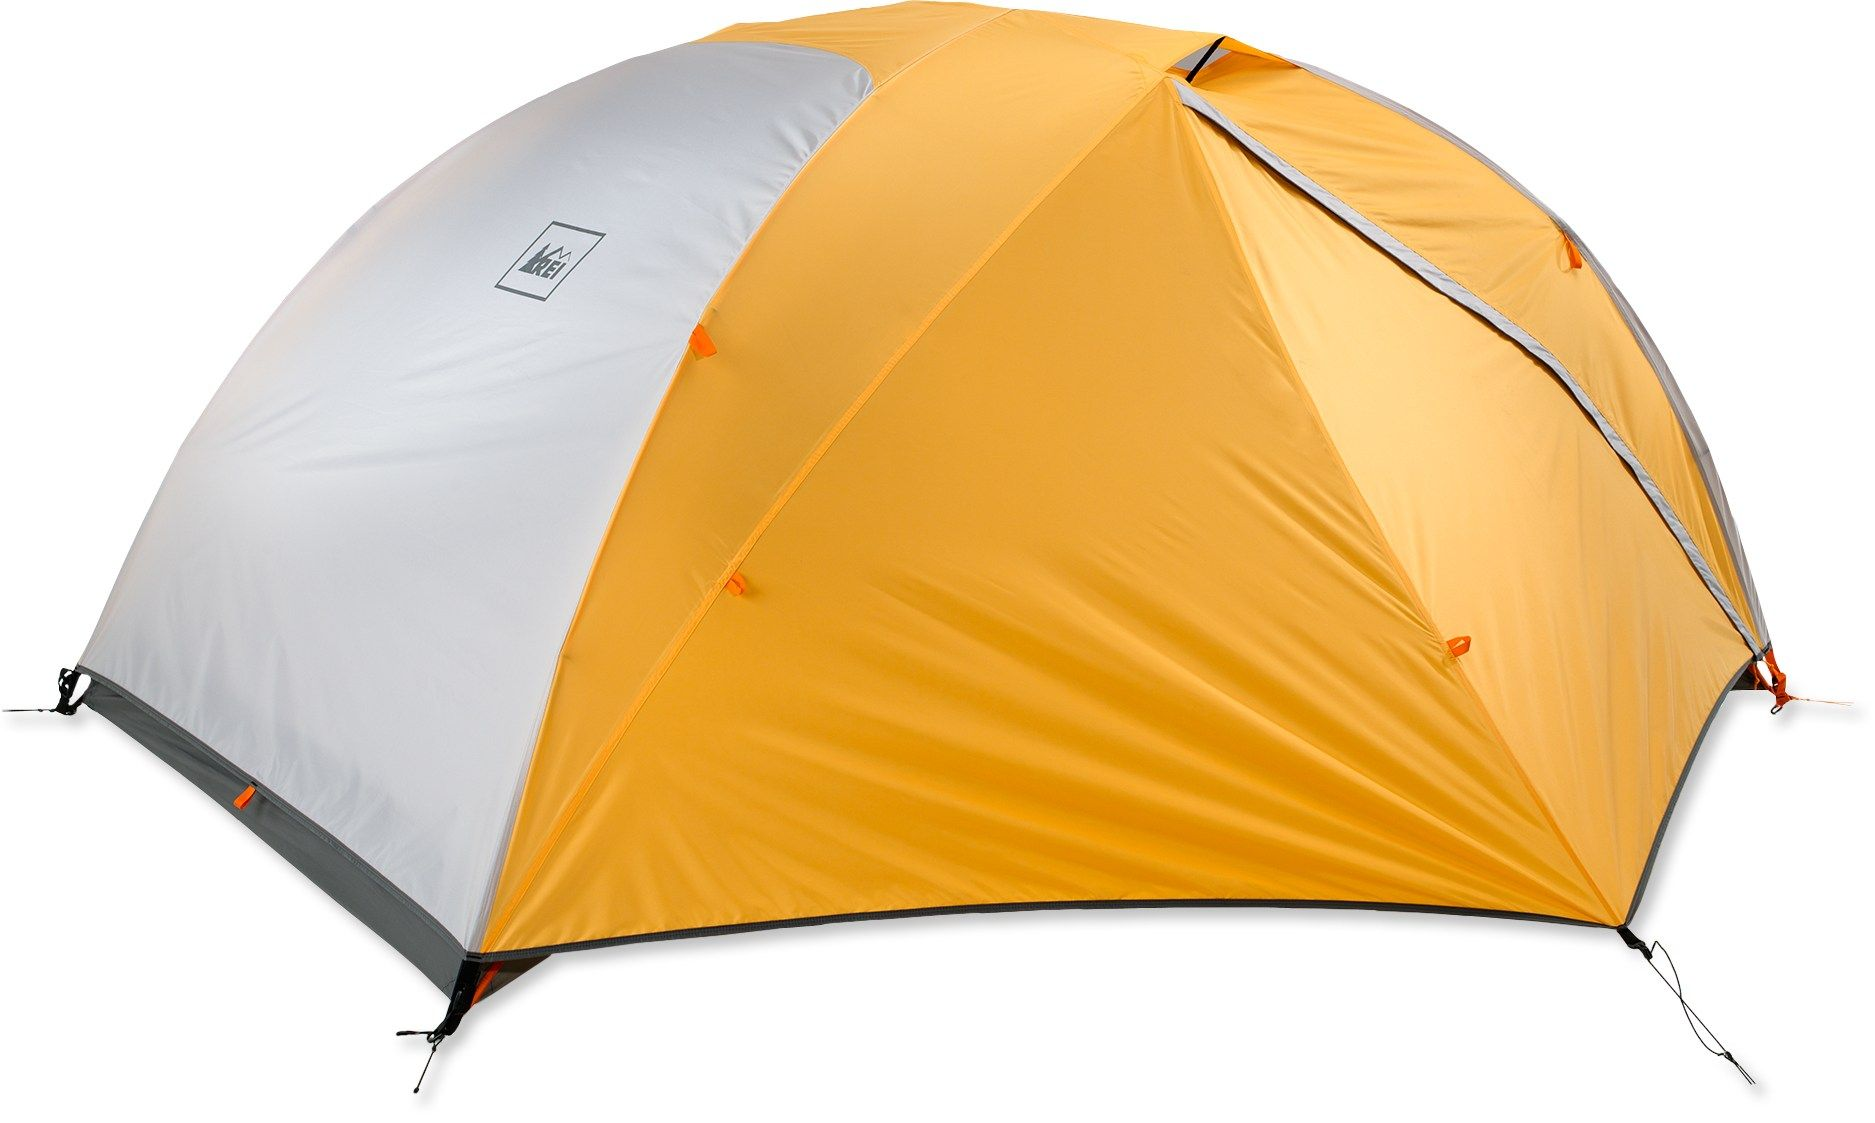 REI Half Dome 2 Plus Tent - Free Shipping at REI.com  sc 1 st  Pinterest & REI Half Dome 2 Plus Tent - Free Shipping at REI.com | Tents ...